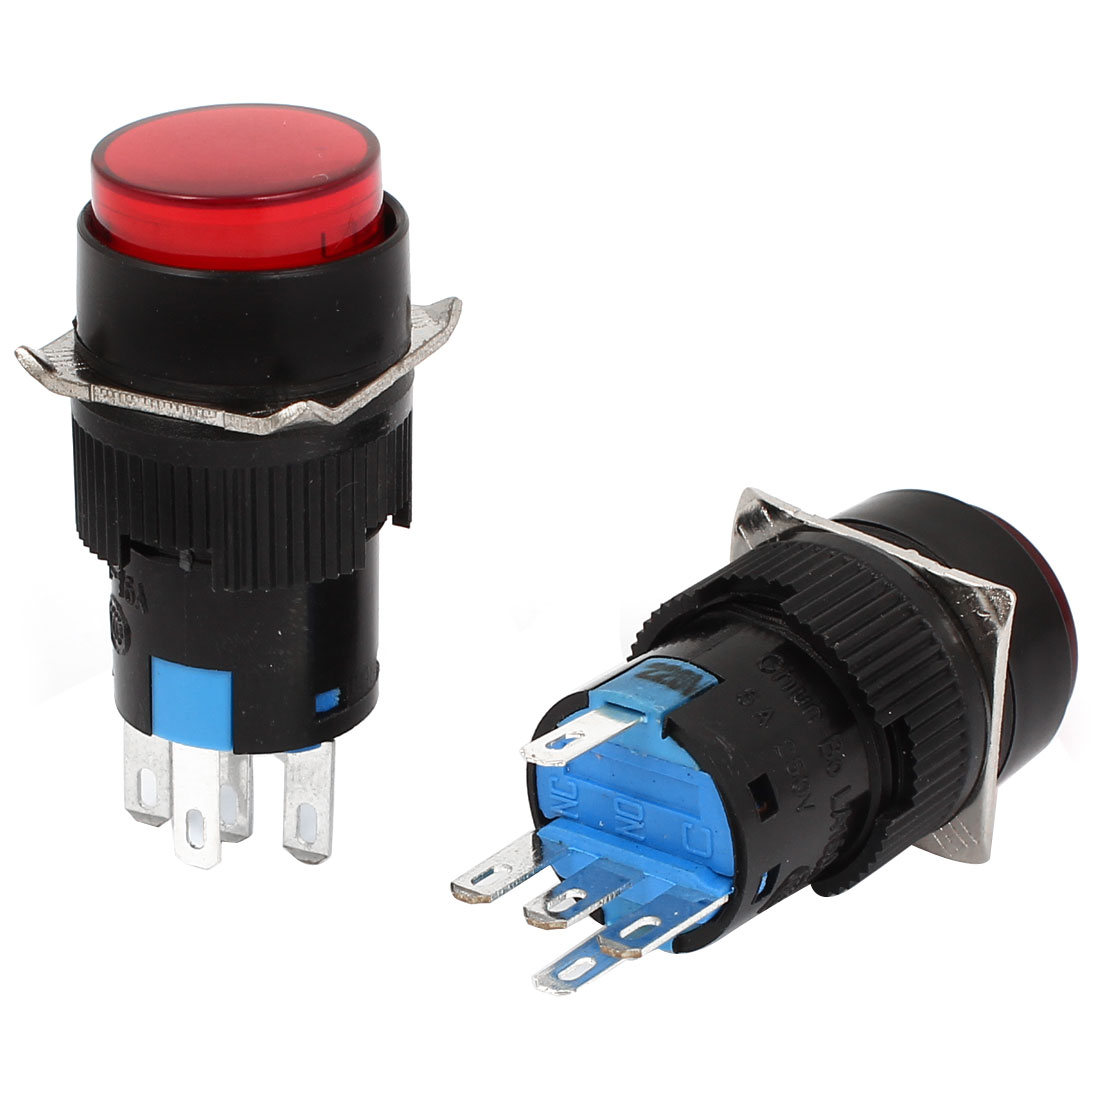 2pcs AC220V Red Light SPDT Locking Round Push Button Switch 15mm